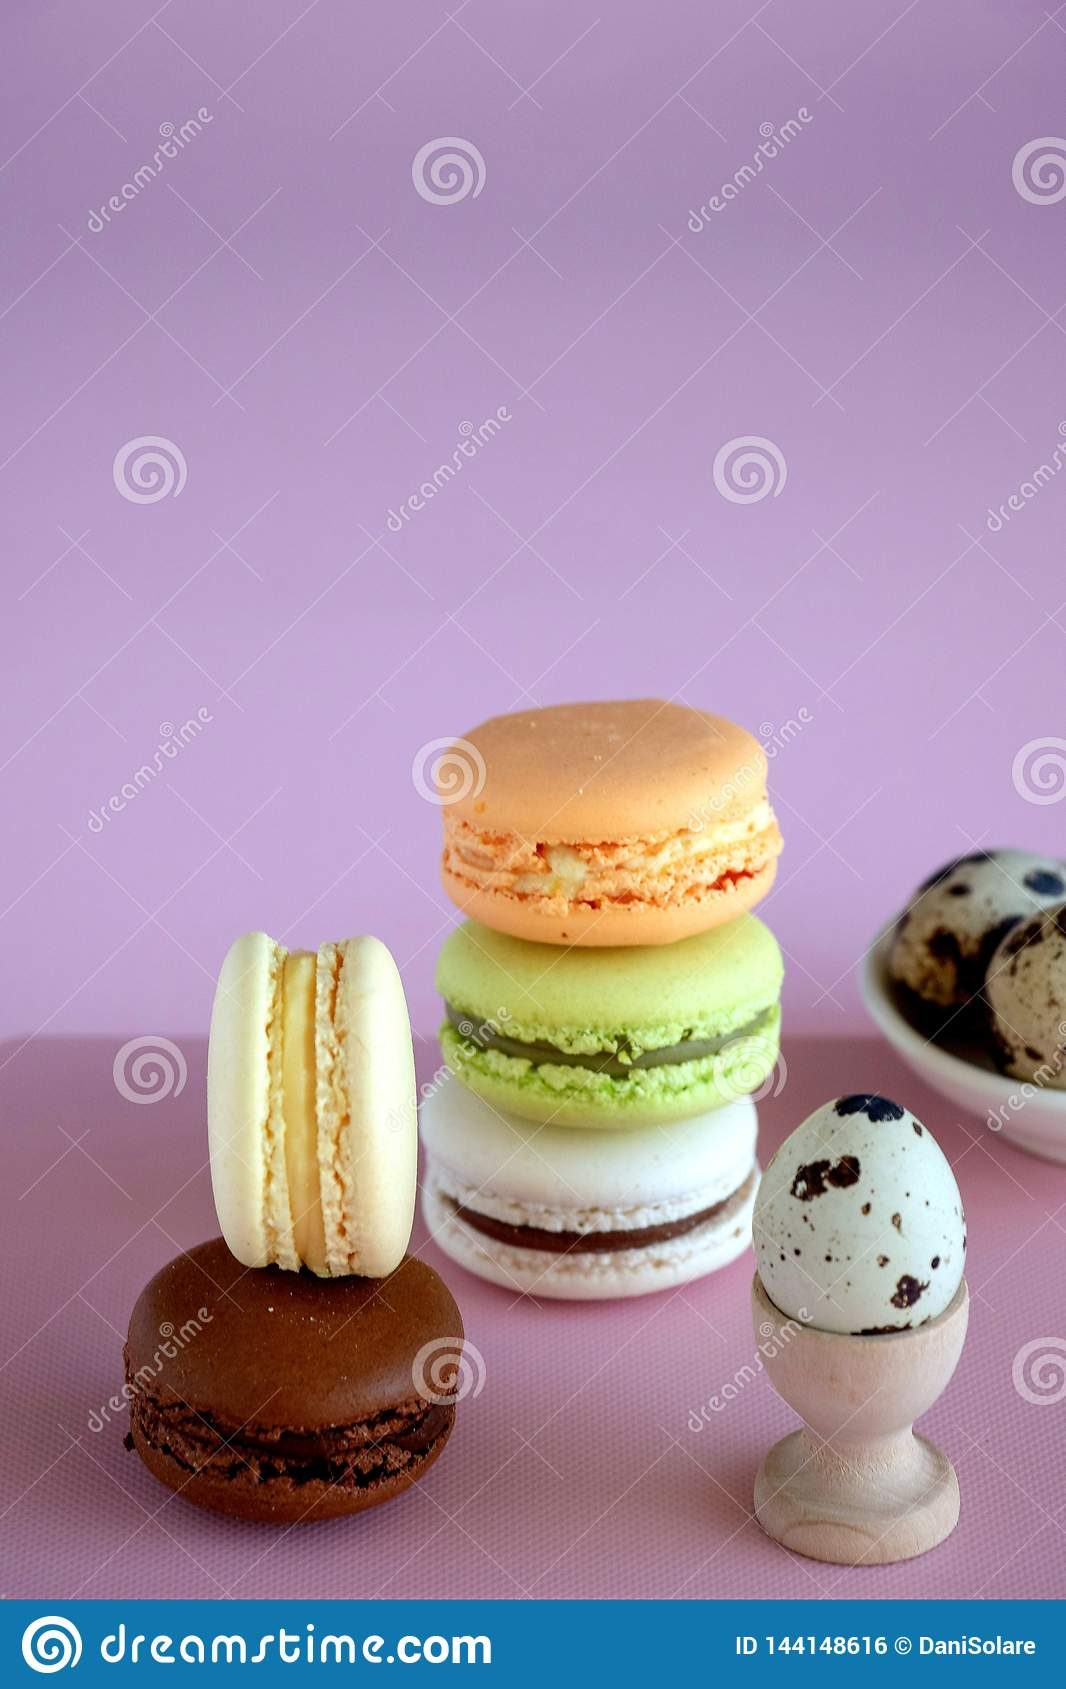 Macaroons on a pink background.